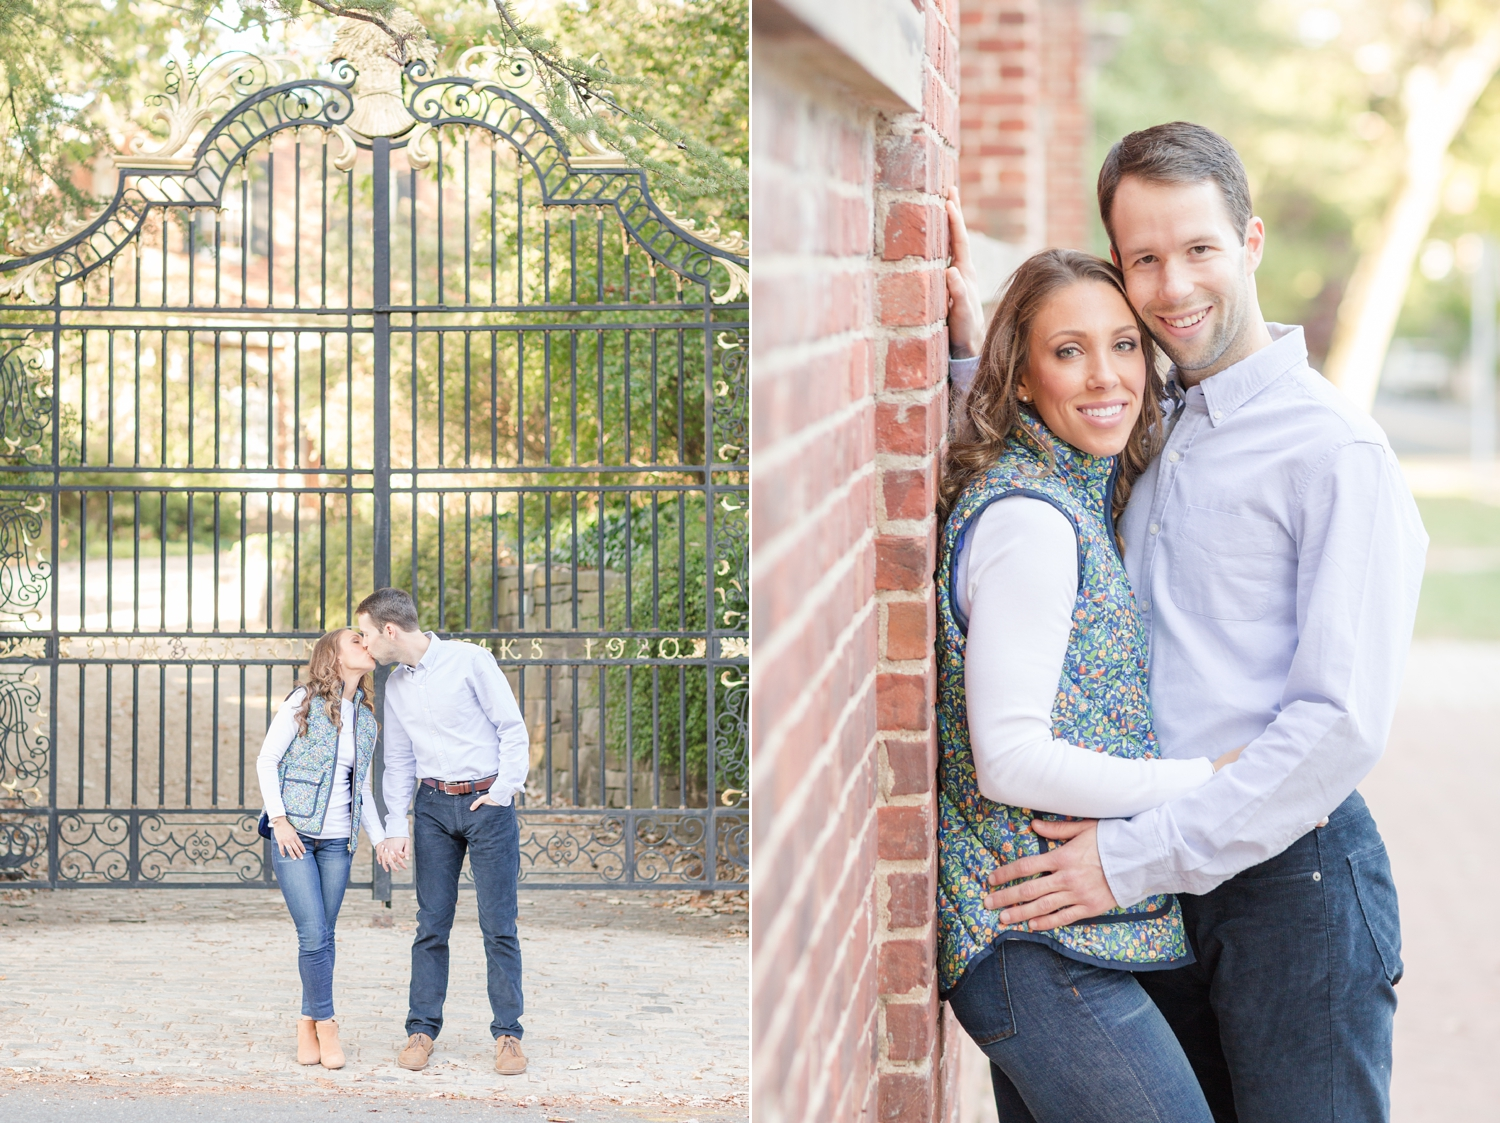 Emily Schroeder & Brian Malat Engagement-30_Georgetown-DC-engagement-virginia-engagement-photographer-anna-grace-photography-photo.jpg